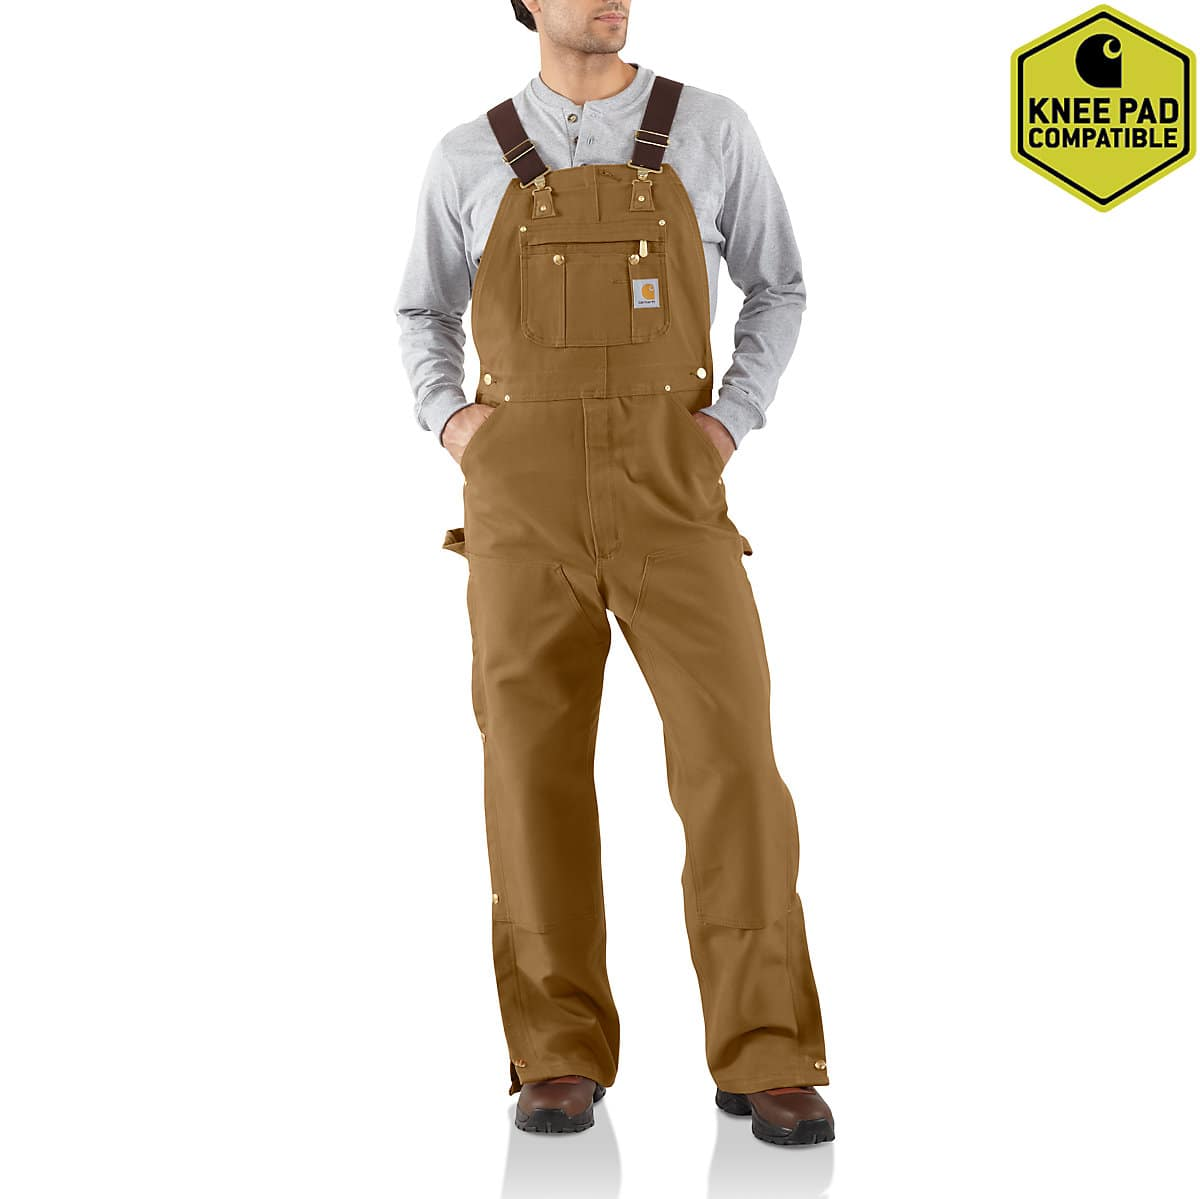 24a018ed7e1 Men's Duck Zip-To-Thigh Bib Overall/Unlined R37 | Carhartt